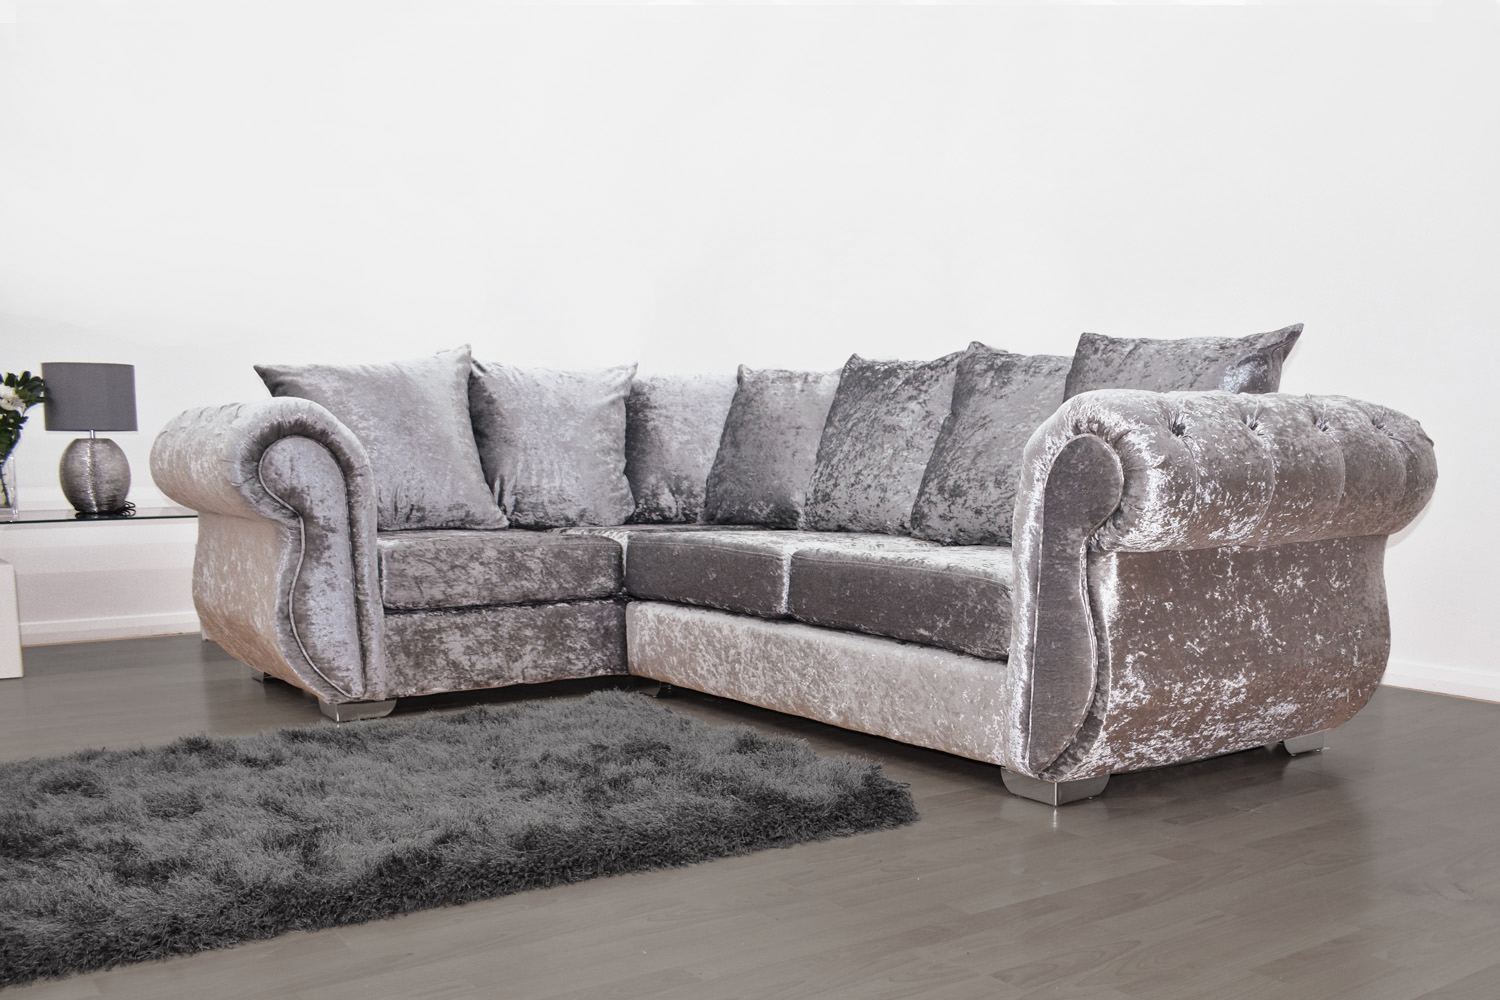 Buckingham Corner Sofa in Silver Velvet - Mirrored furniture - Sparkle Diamond - House of Sparkles